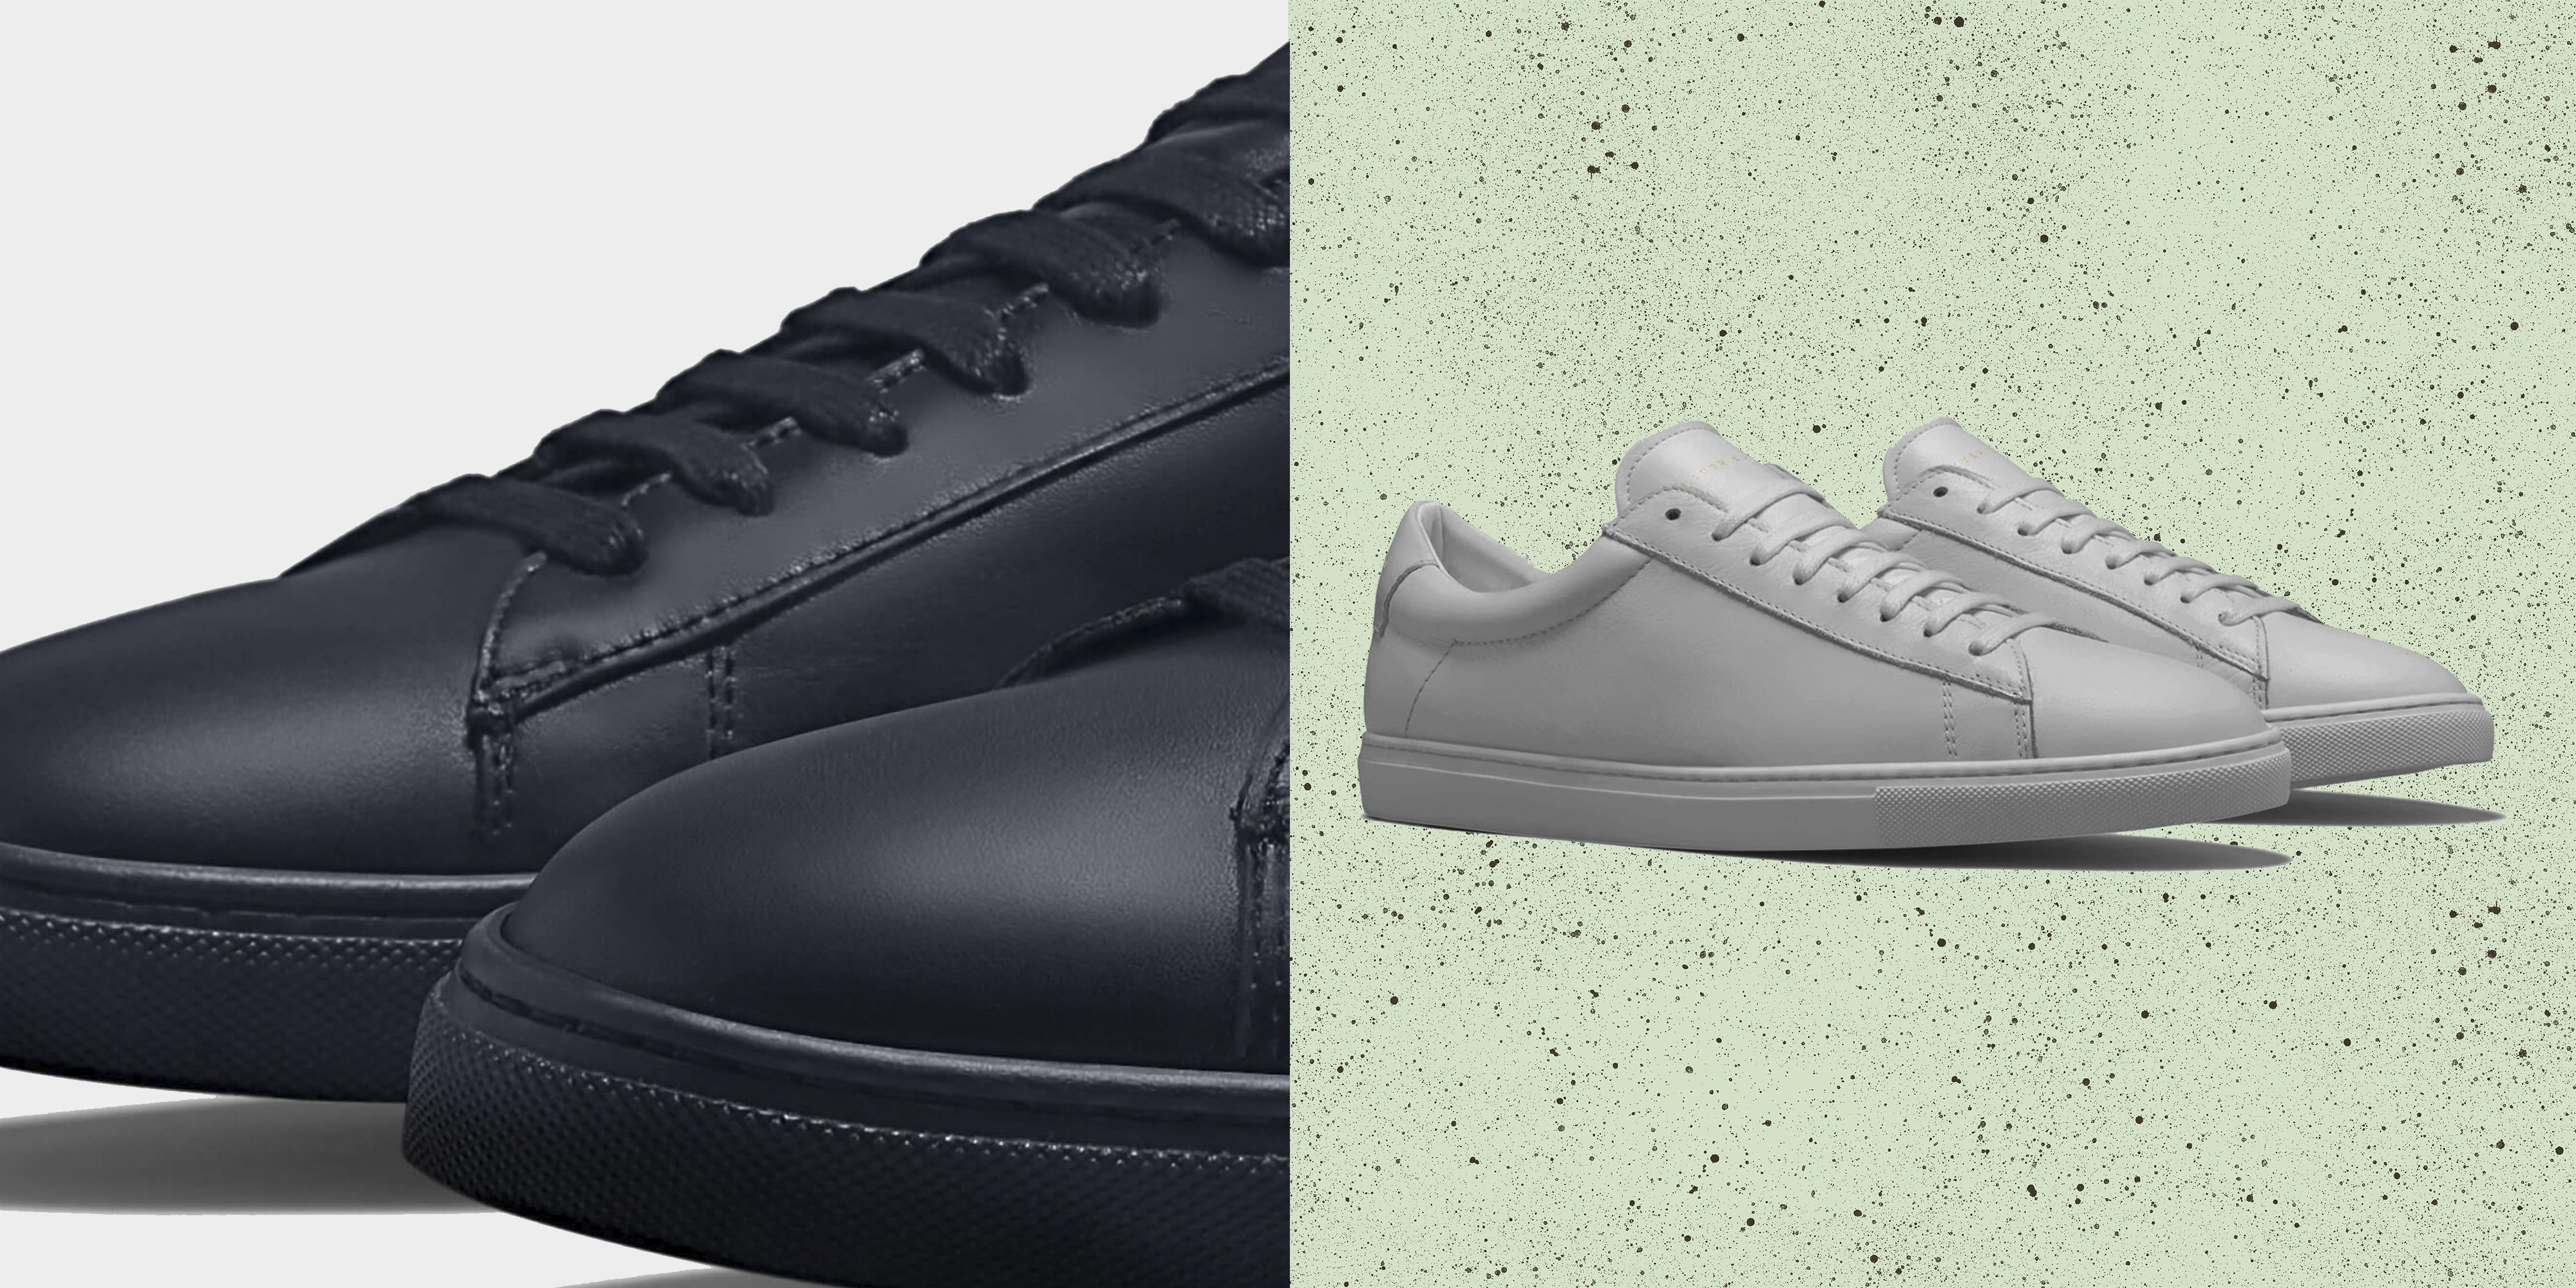 If You're in the Market for a Minimalist Sneaker, This Might Well Be It